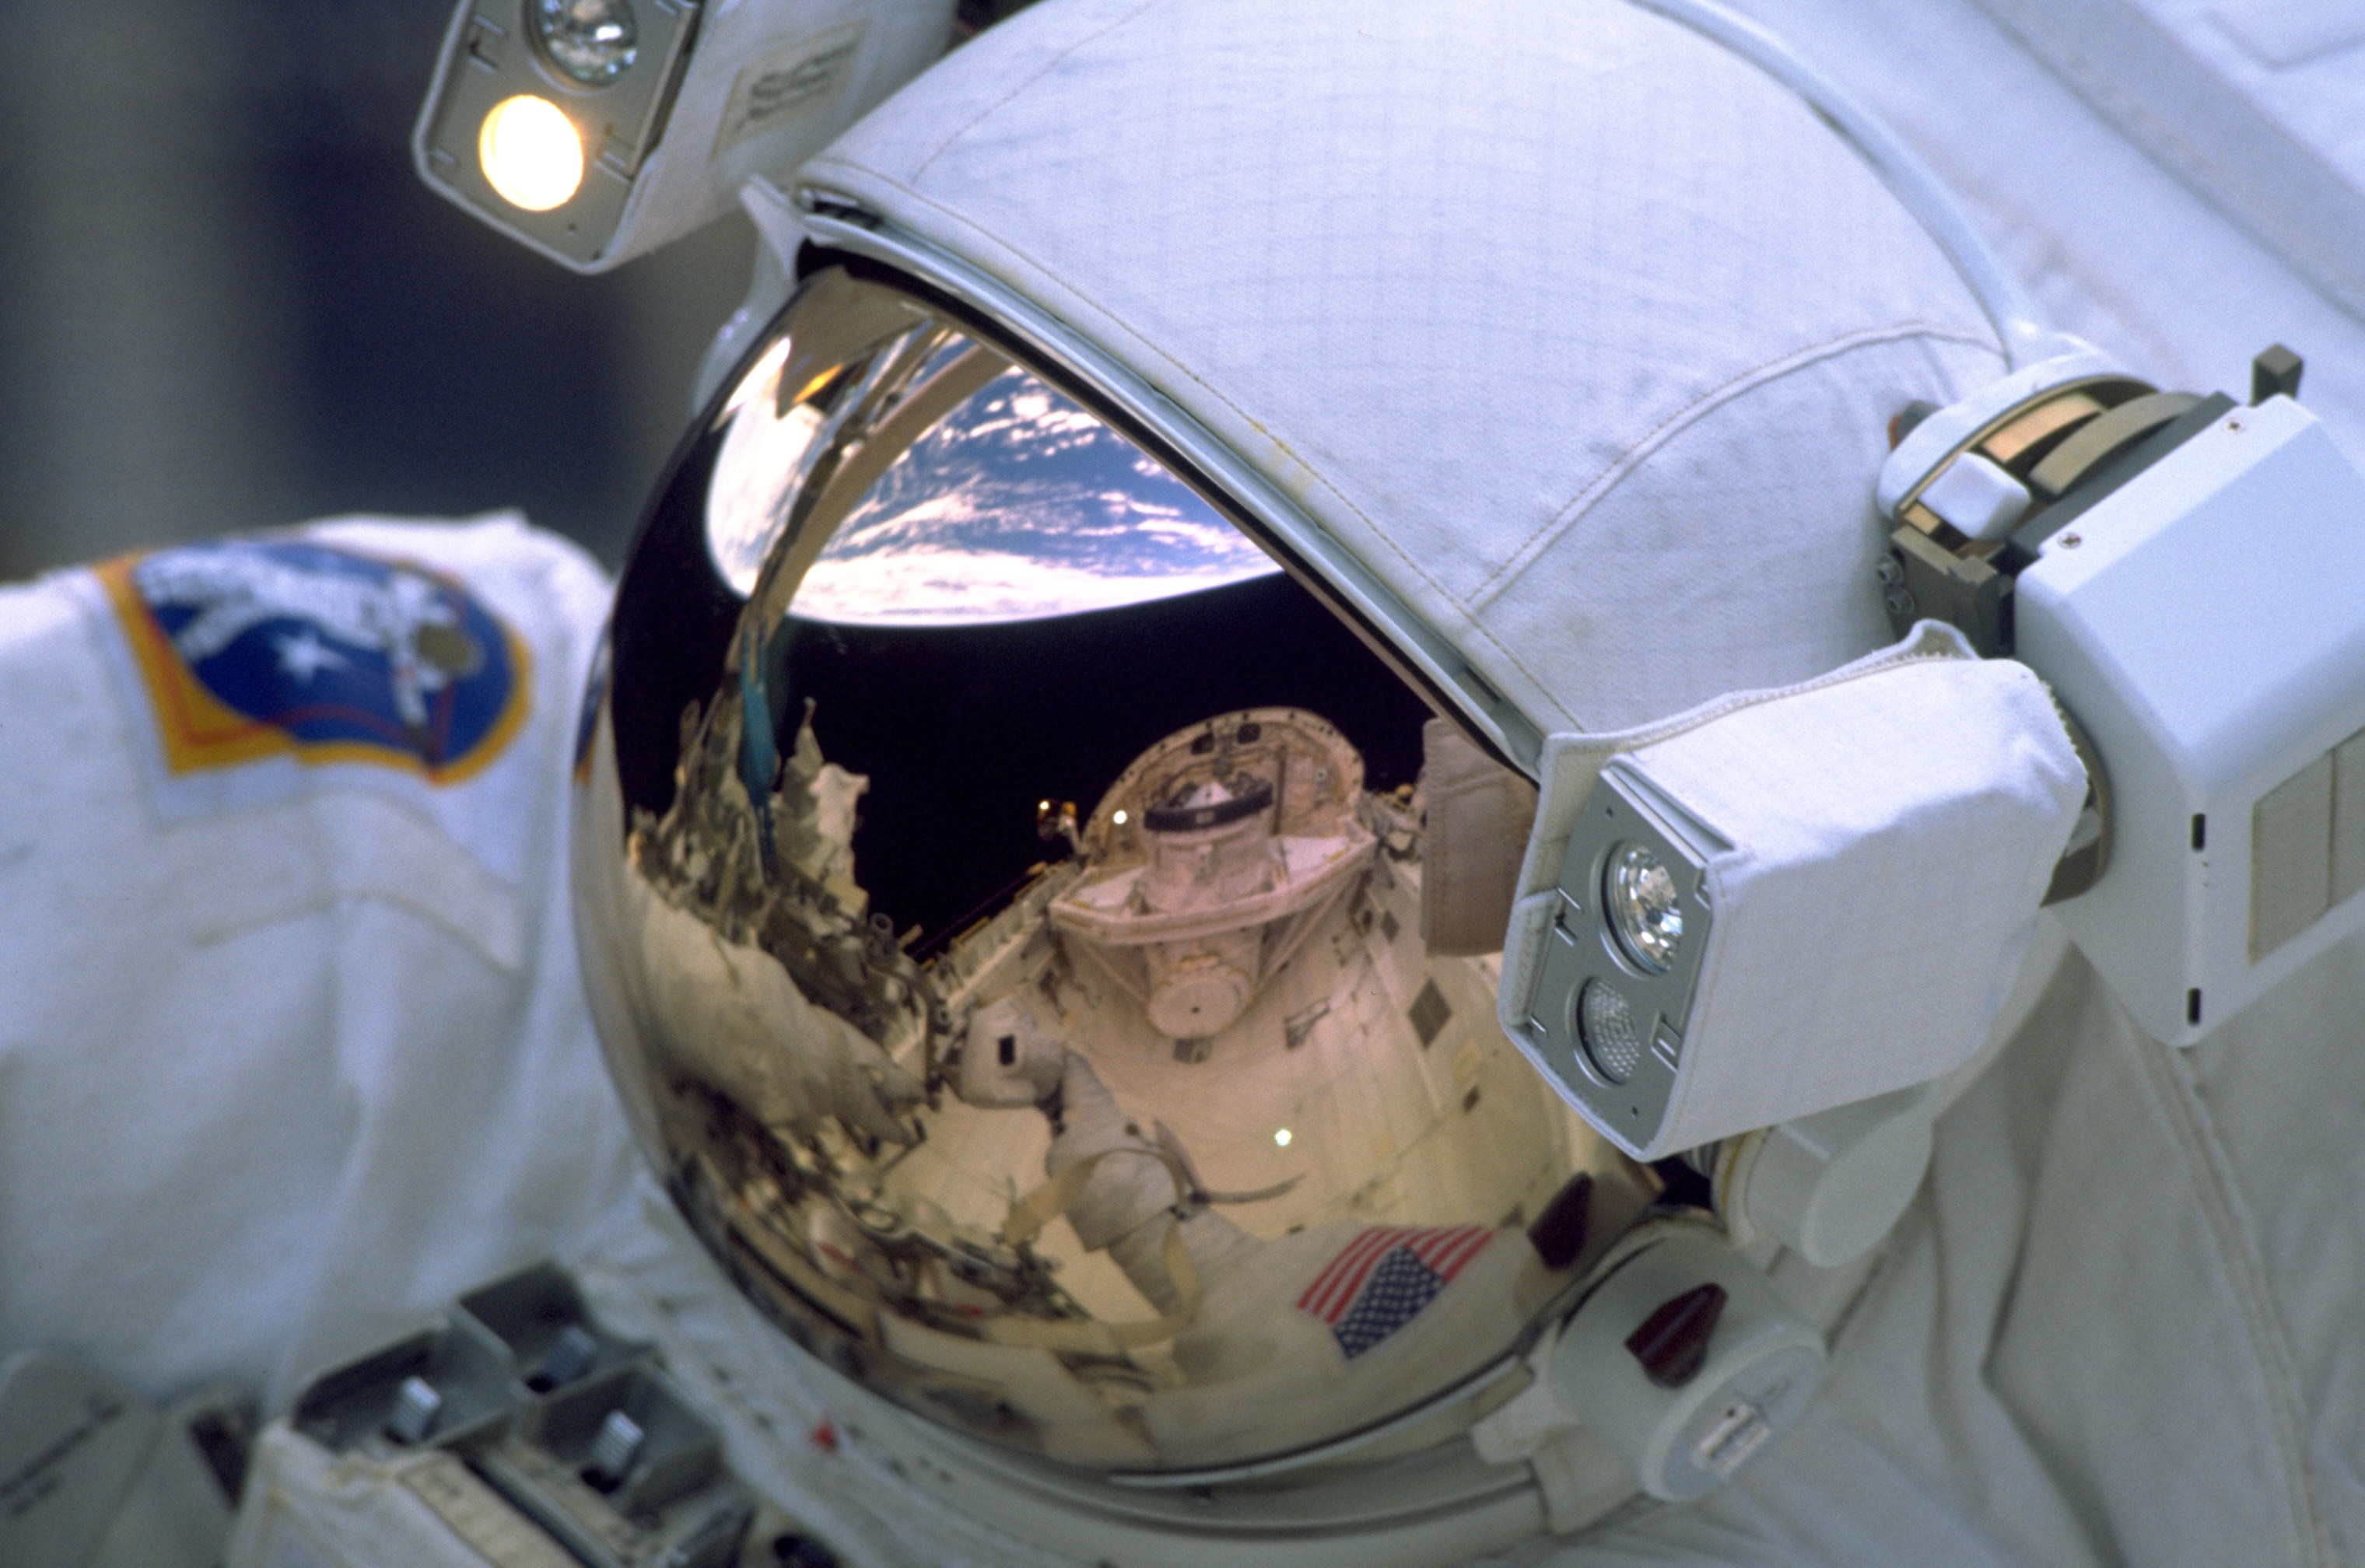 Astronaut visor reflection